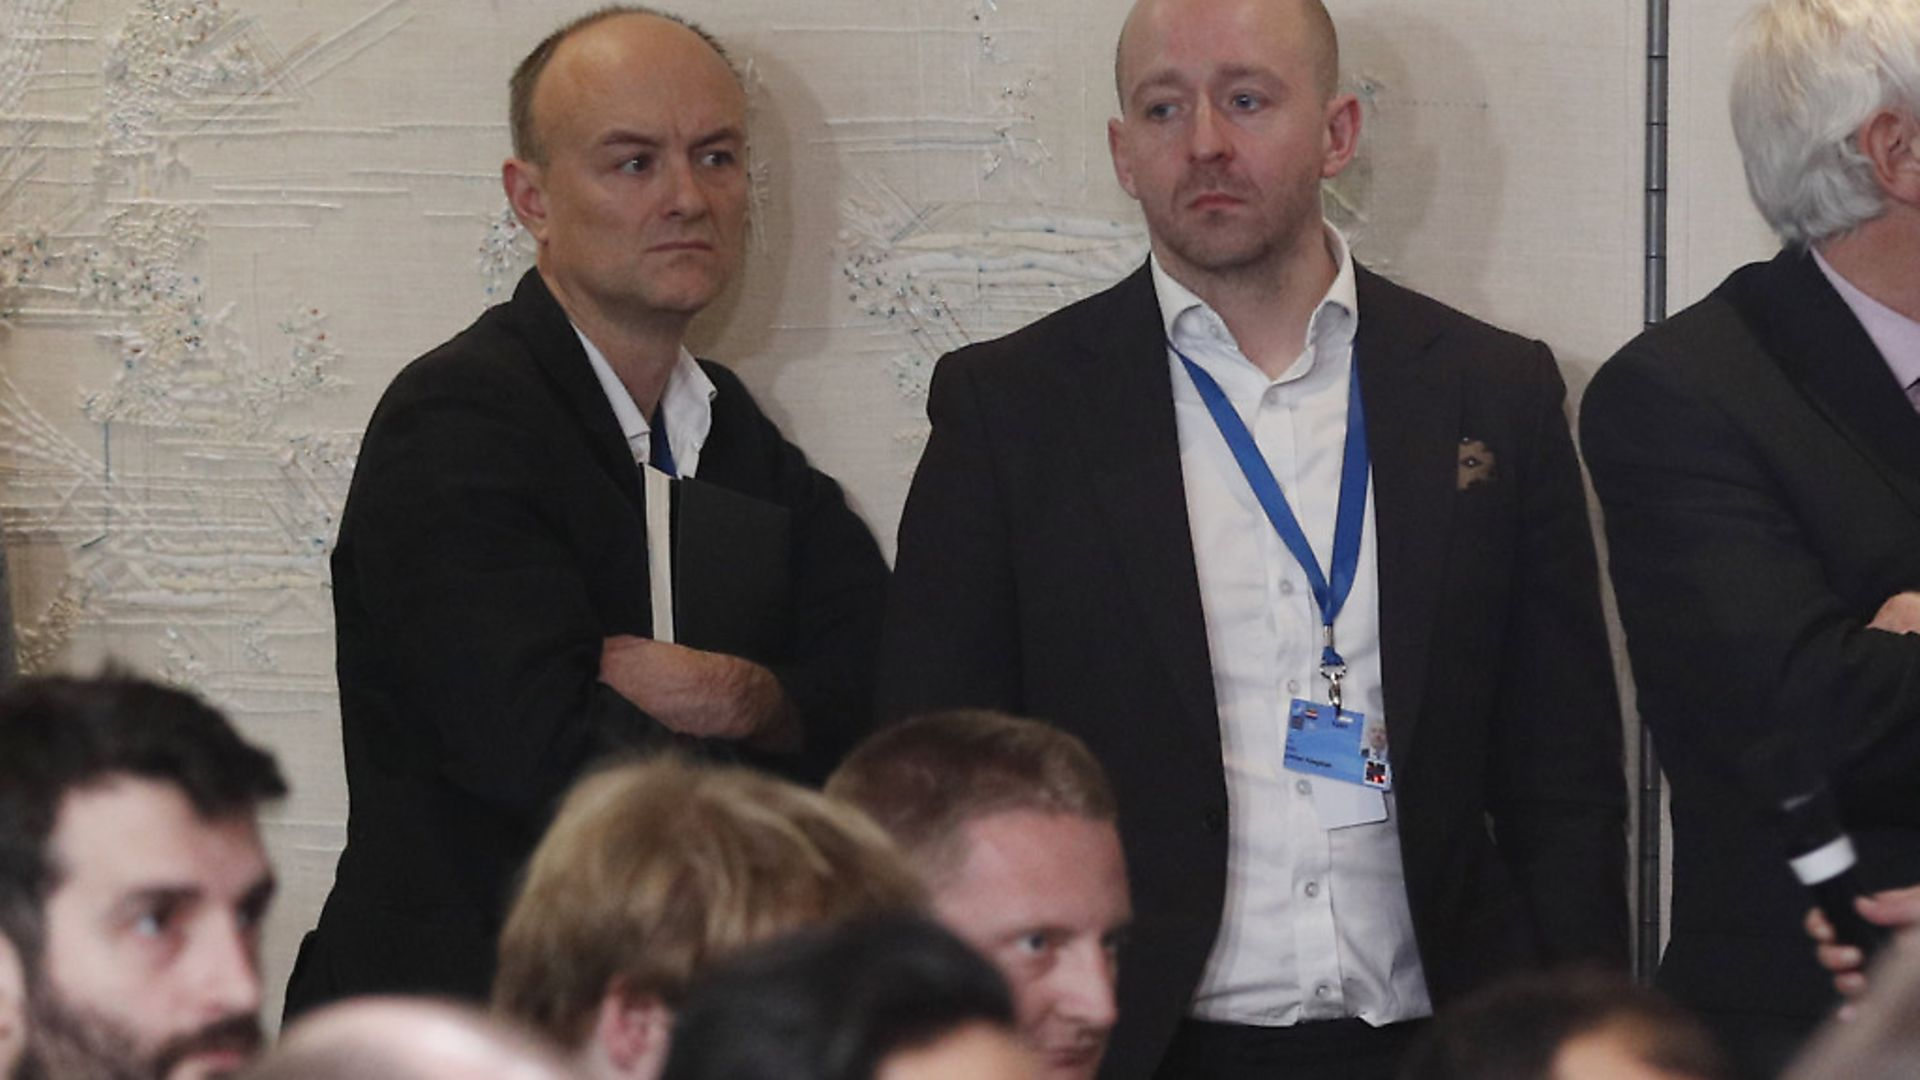 Downing Street special advisor Dominic Cummings (left) and director of communications Lee Cain (right) attend Boris Johnson's press conference during a NATO summit. Photograph: Adrian Dennis/PA. - Credit: PA